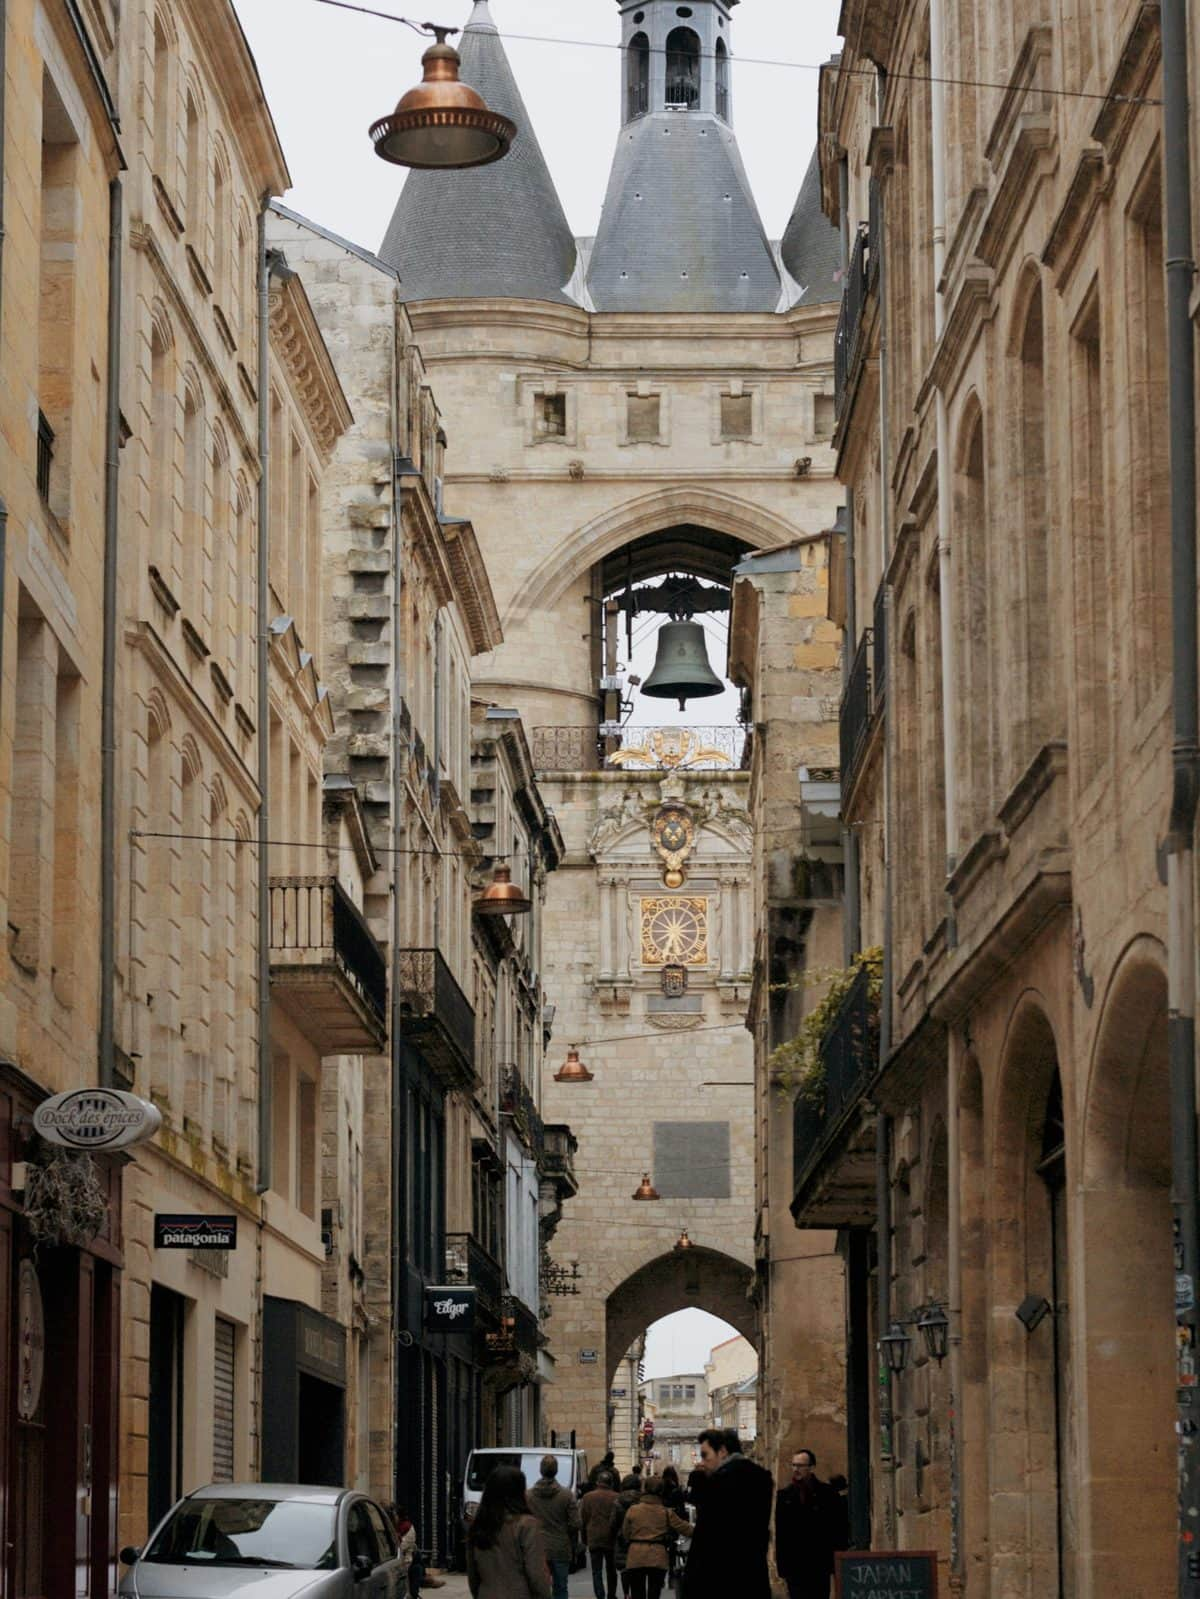 The Grosse Cloche (Big Bell) of Bordeaux, another castle-like structure that operates today as a passageway